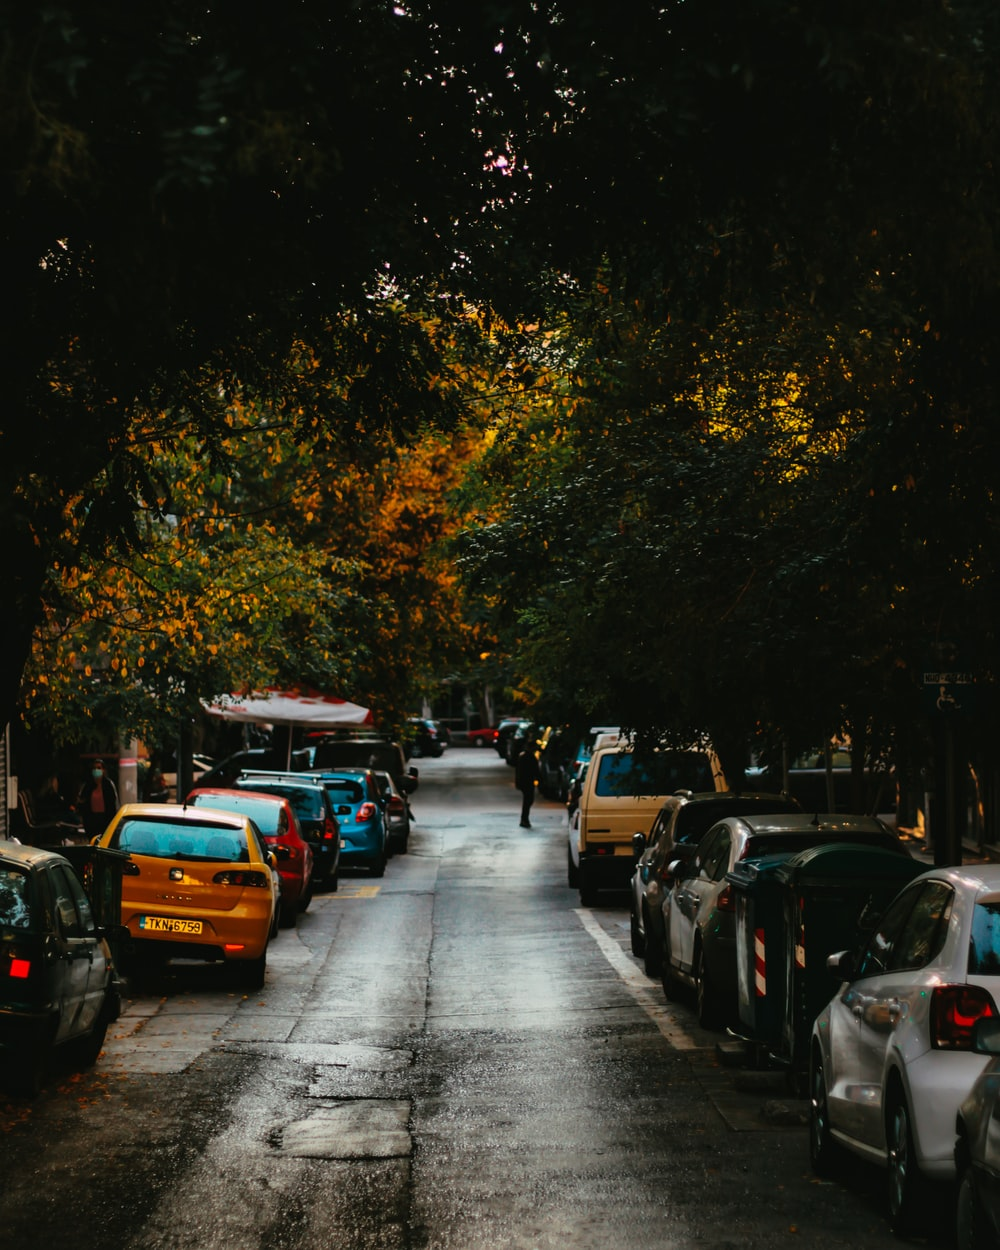 cars parked on the side of the road during daytime